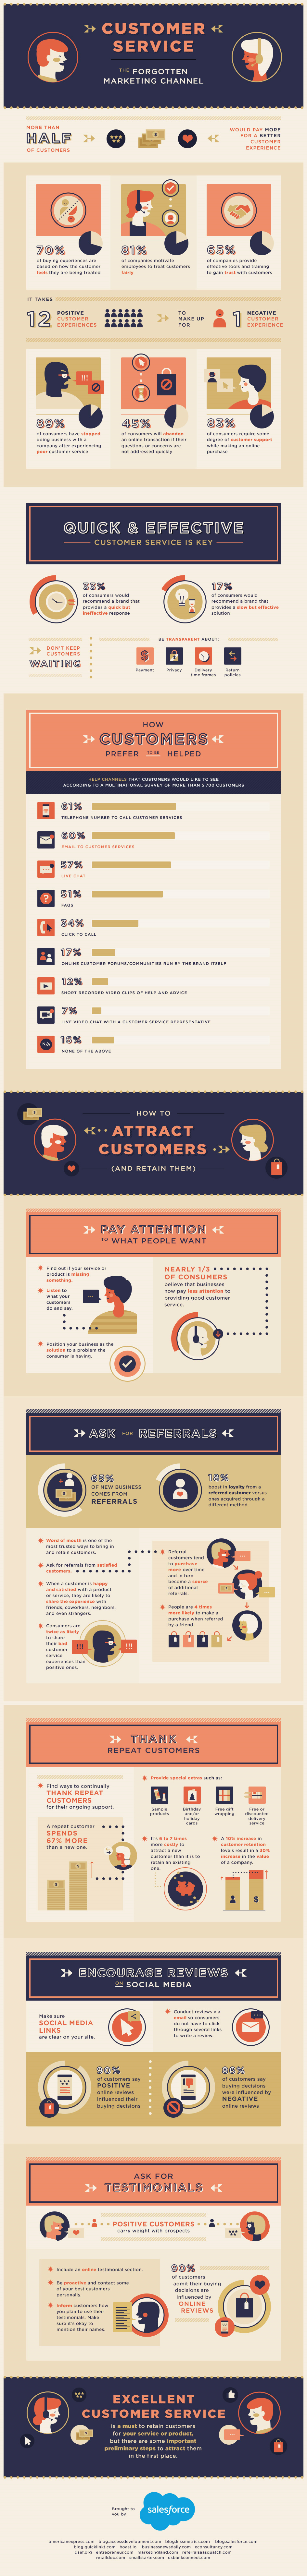 Customer service is the forgotten marketing channel - customer satisfaction infographic